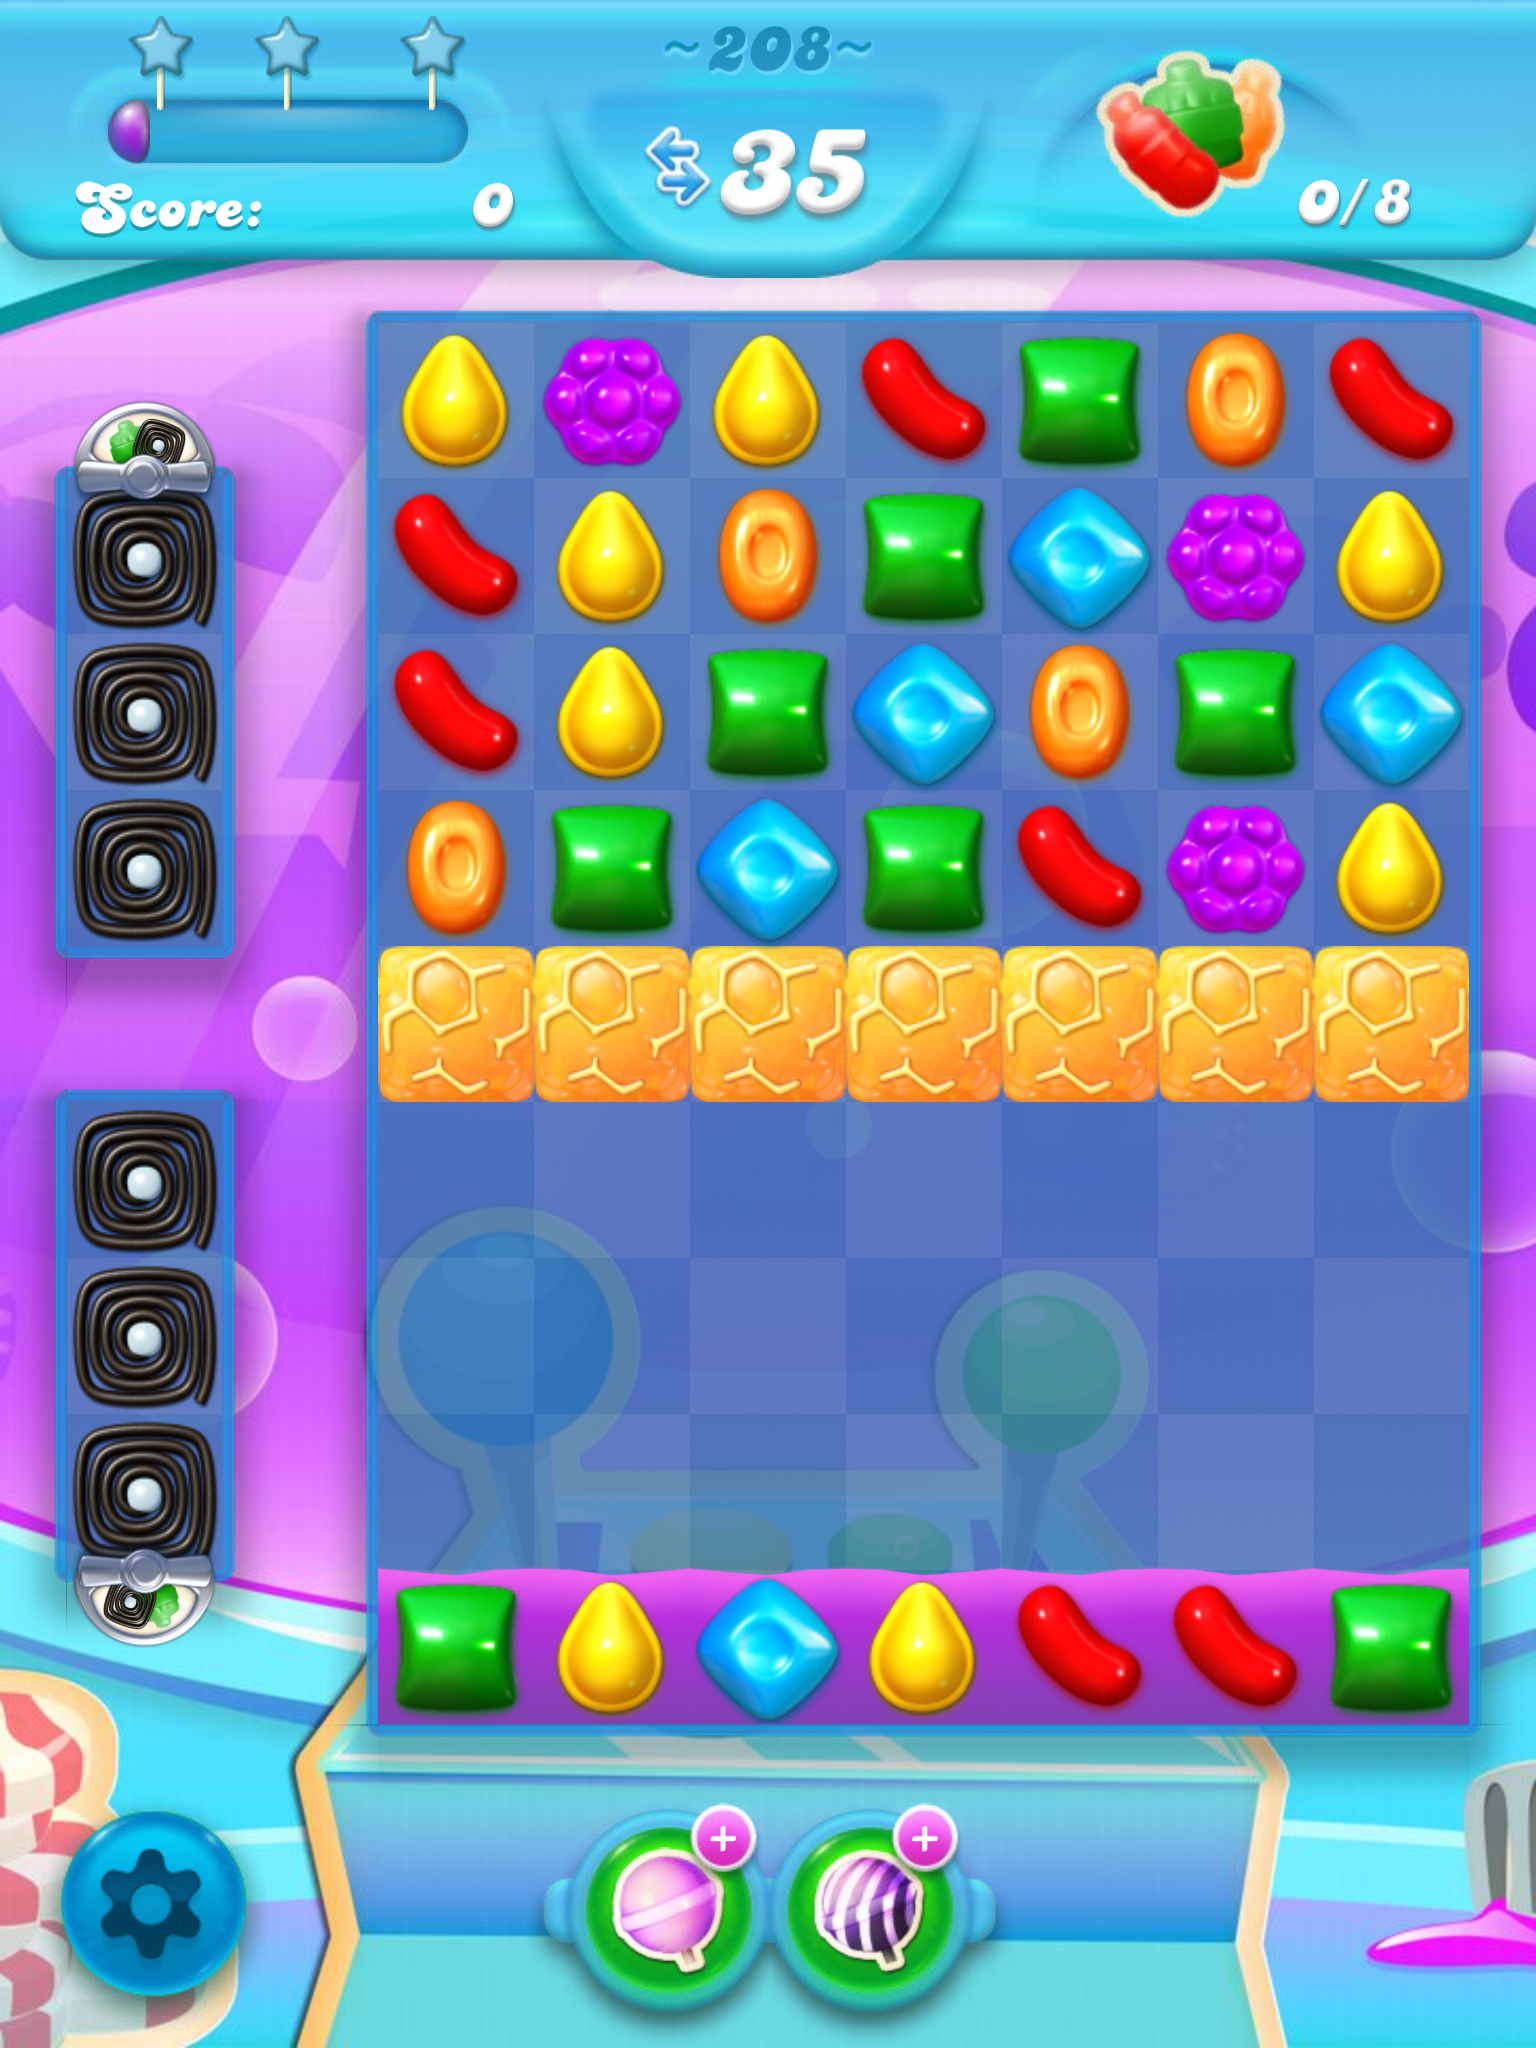 How To Beat Candy Crush Soda Level 208 Candy Crush Games Candy Crush Candy Crush Saga